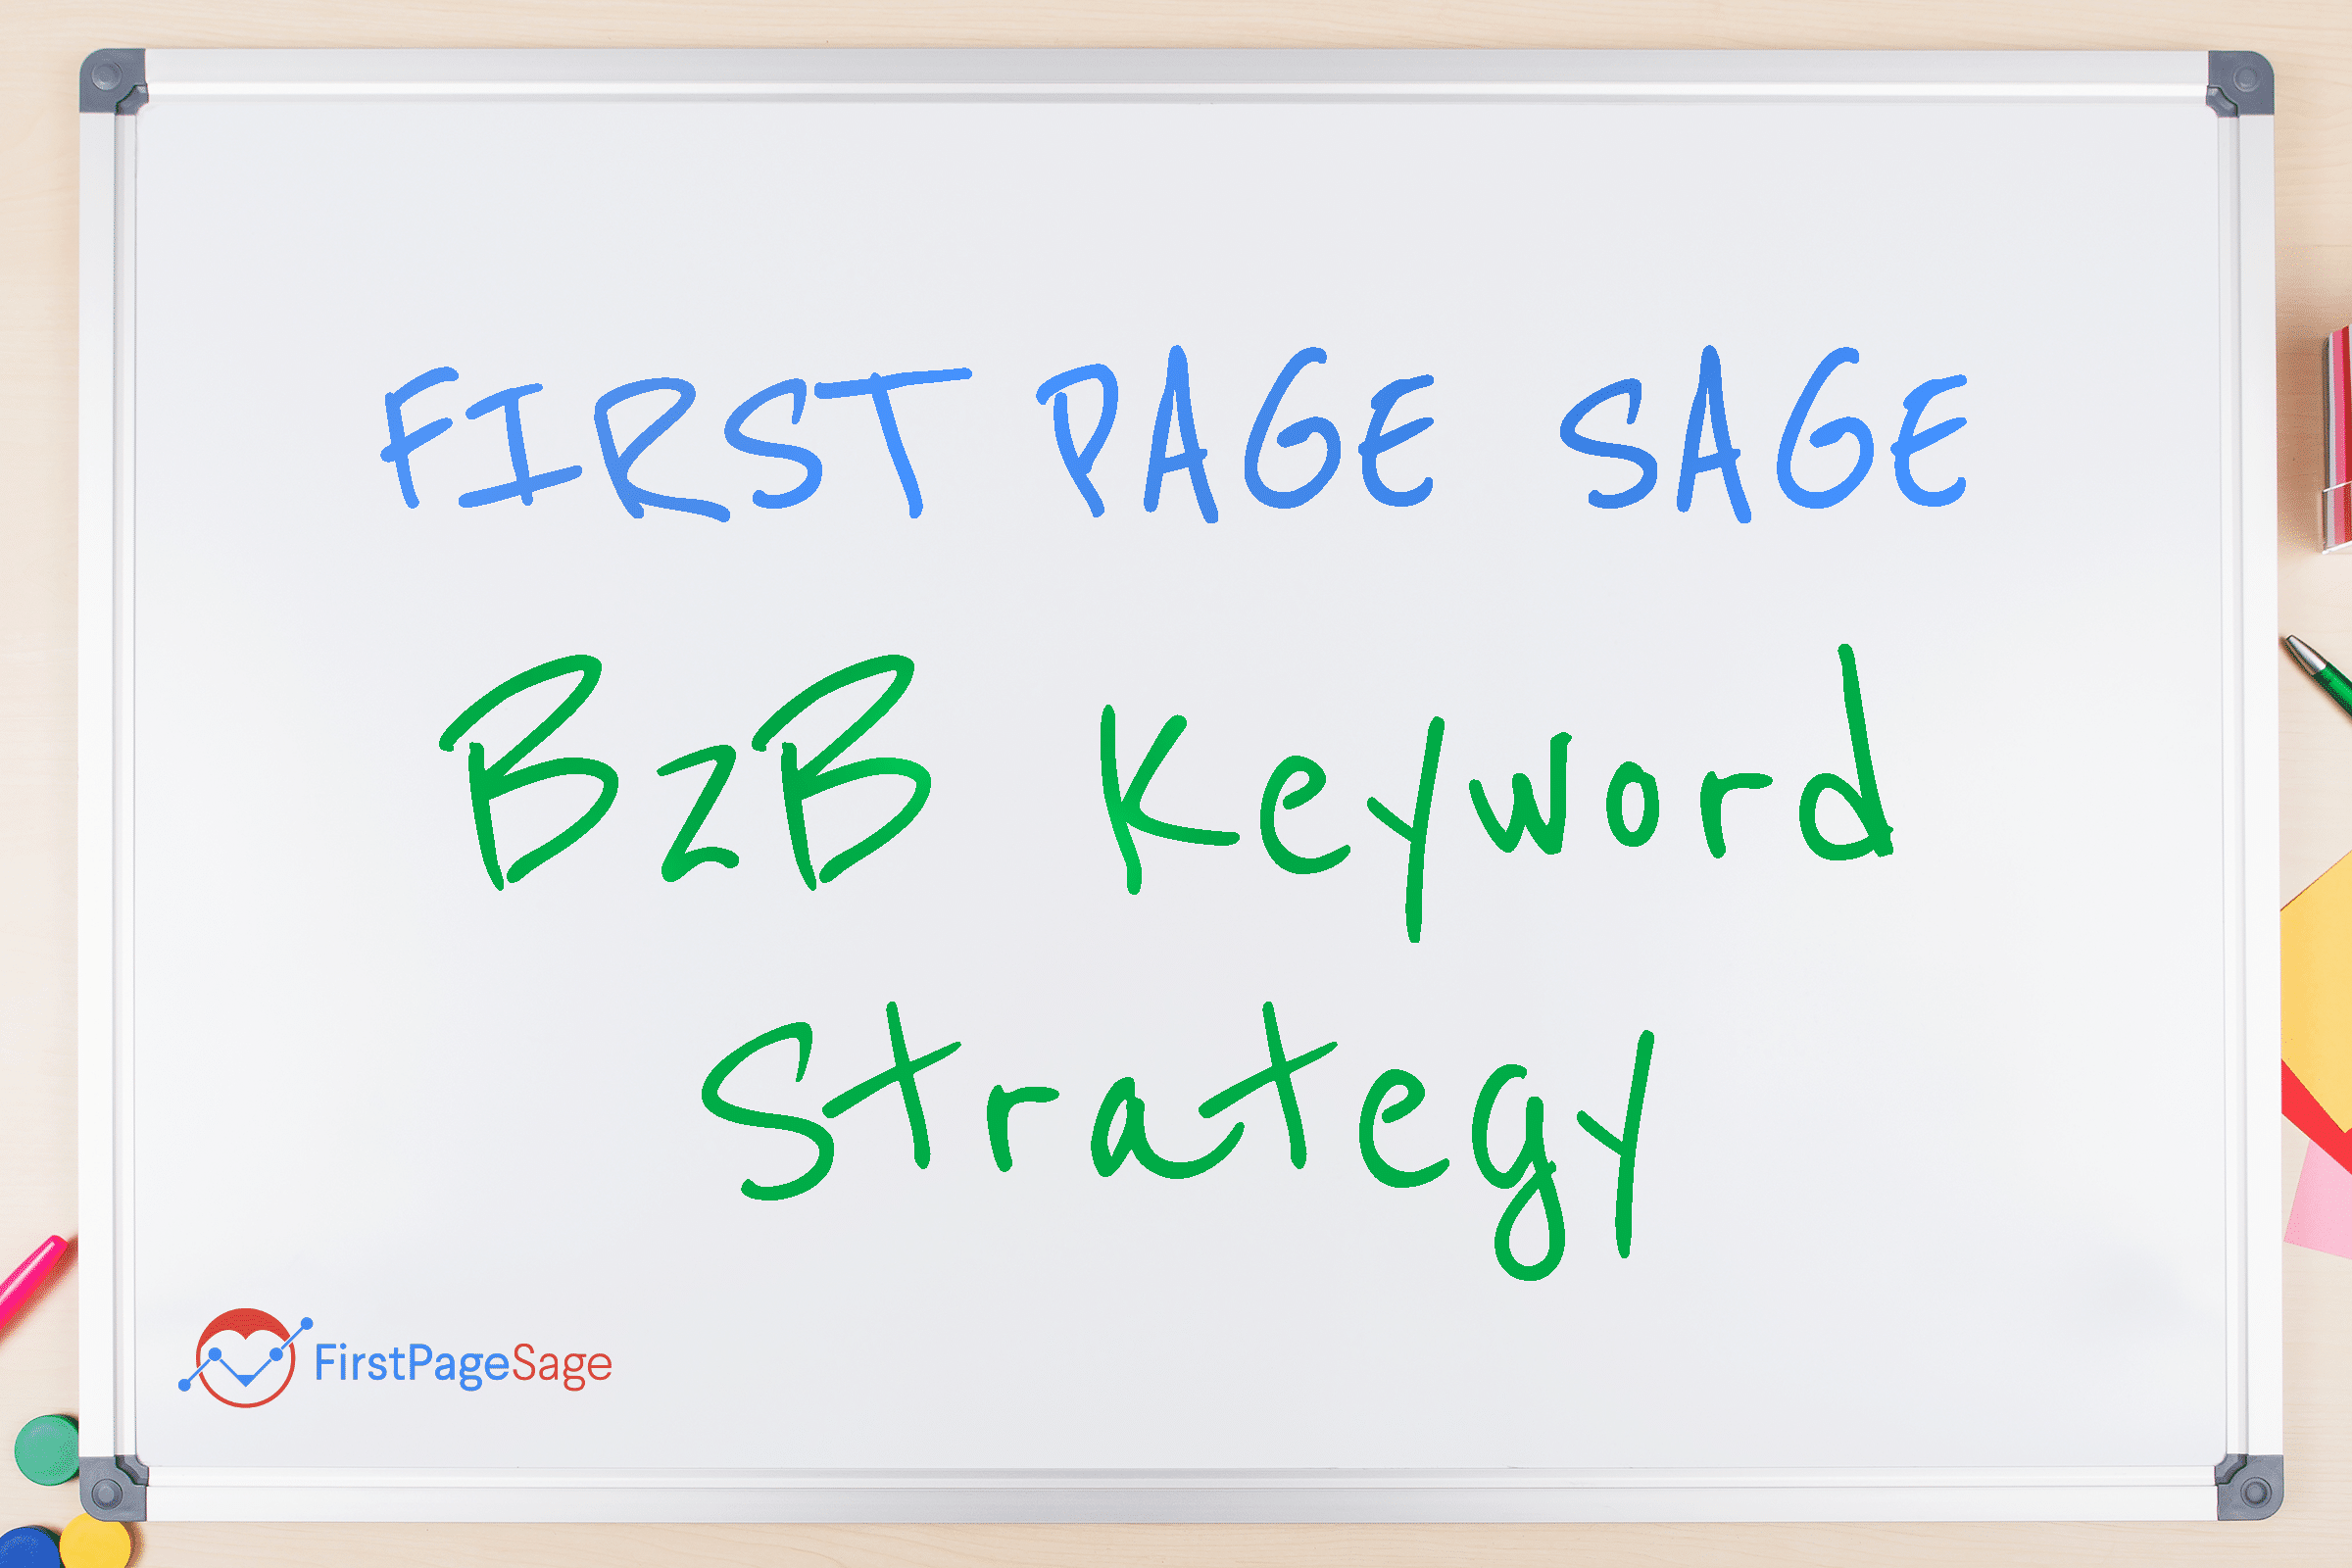 white board with First Page Sage B2B Keyword Strategy written on it